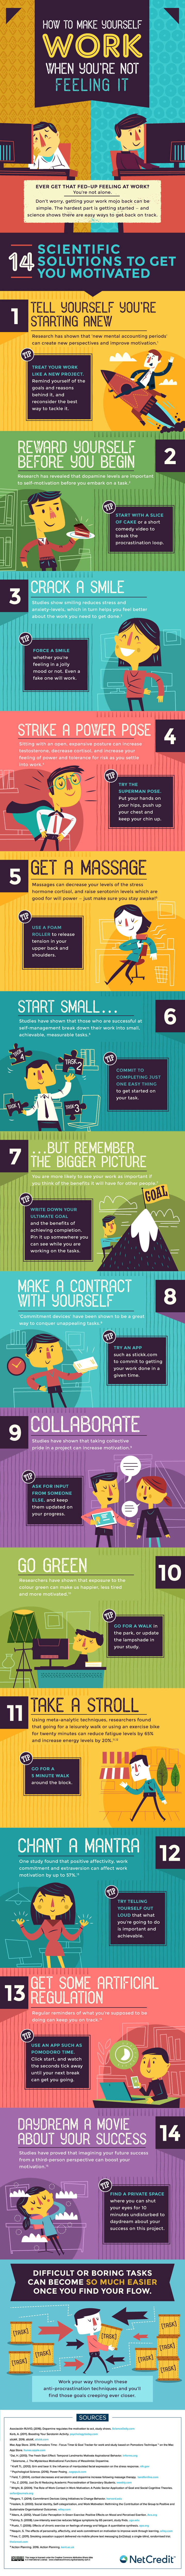 infographic-how-to-make-yourself-work-when-youre-not-feeling-it